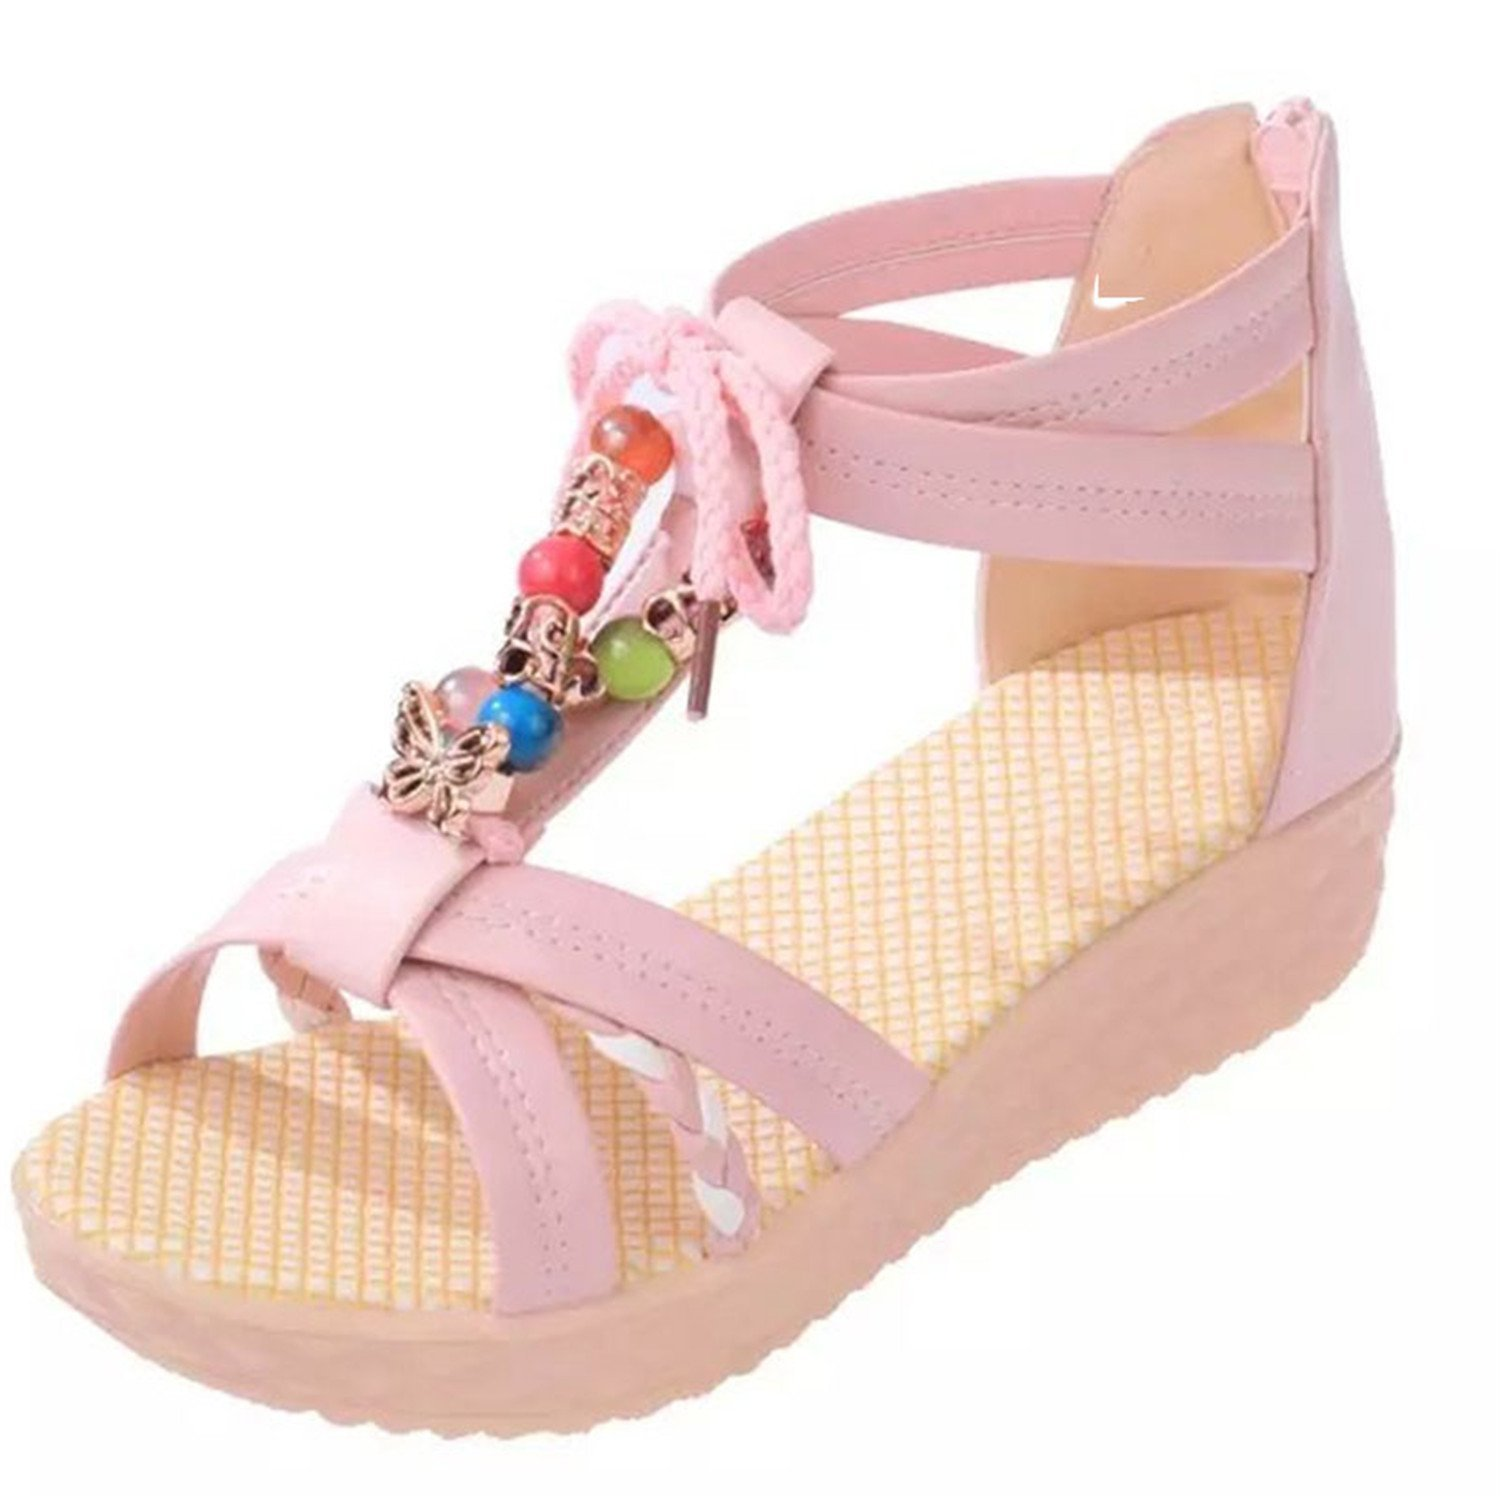 Mary Steele Summer Shoes Women Sandals zapatos mujer Summer Style Womens Shoes Low Heel Flat Ladies Sandals X332